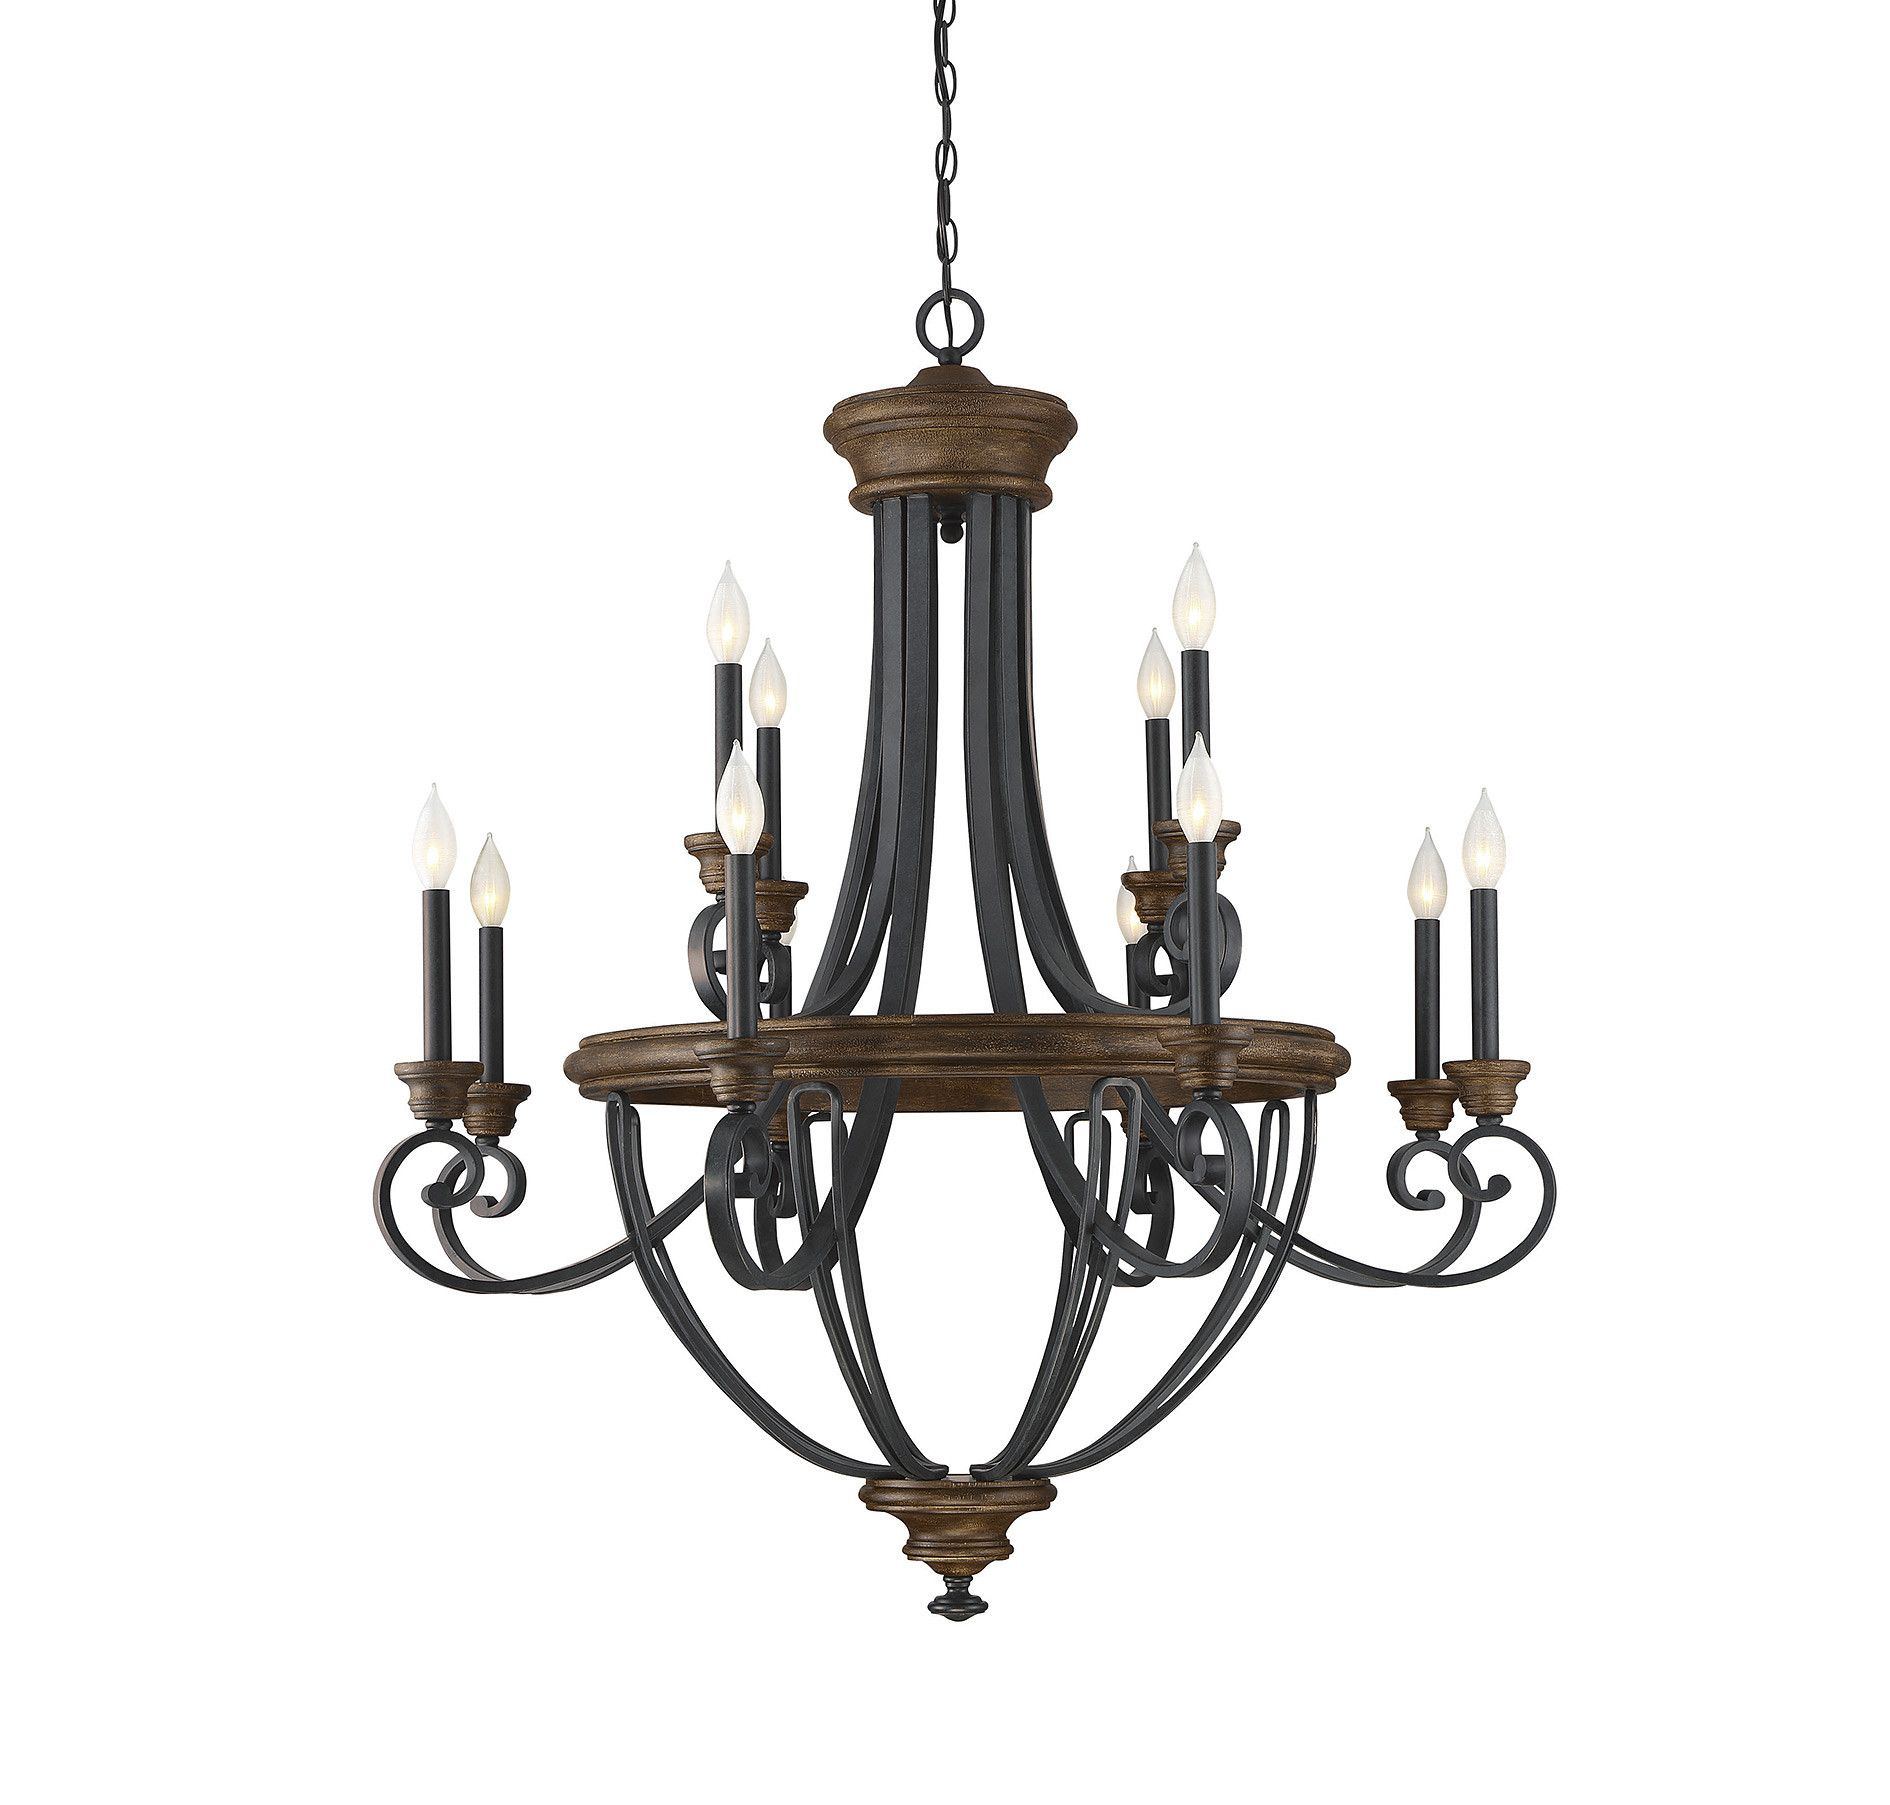 Nanteuil 12 Light Empire Chandelier | Products | Chandelier Regarding Kenedy 9 Light Candle Style Chandeliers (View 12 of 30)